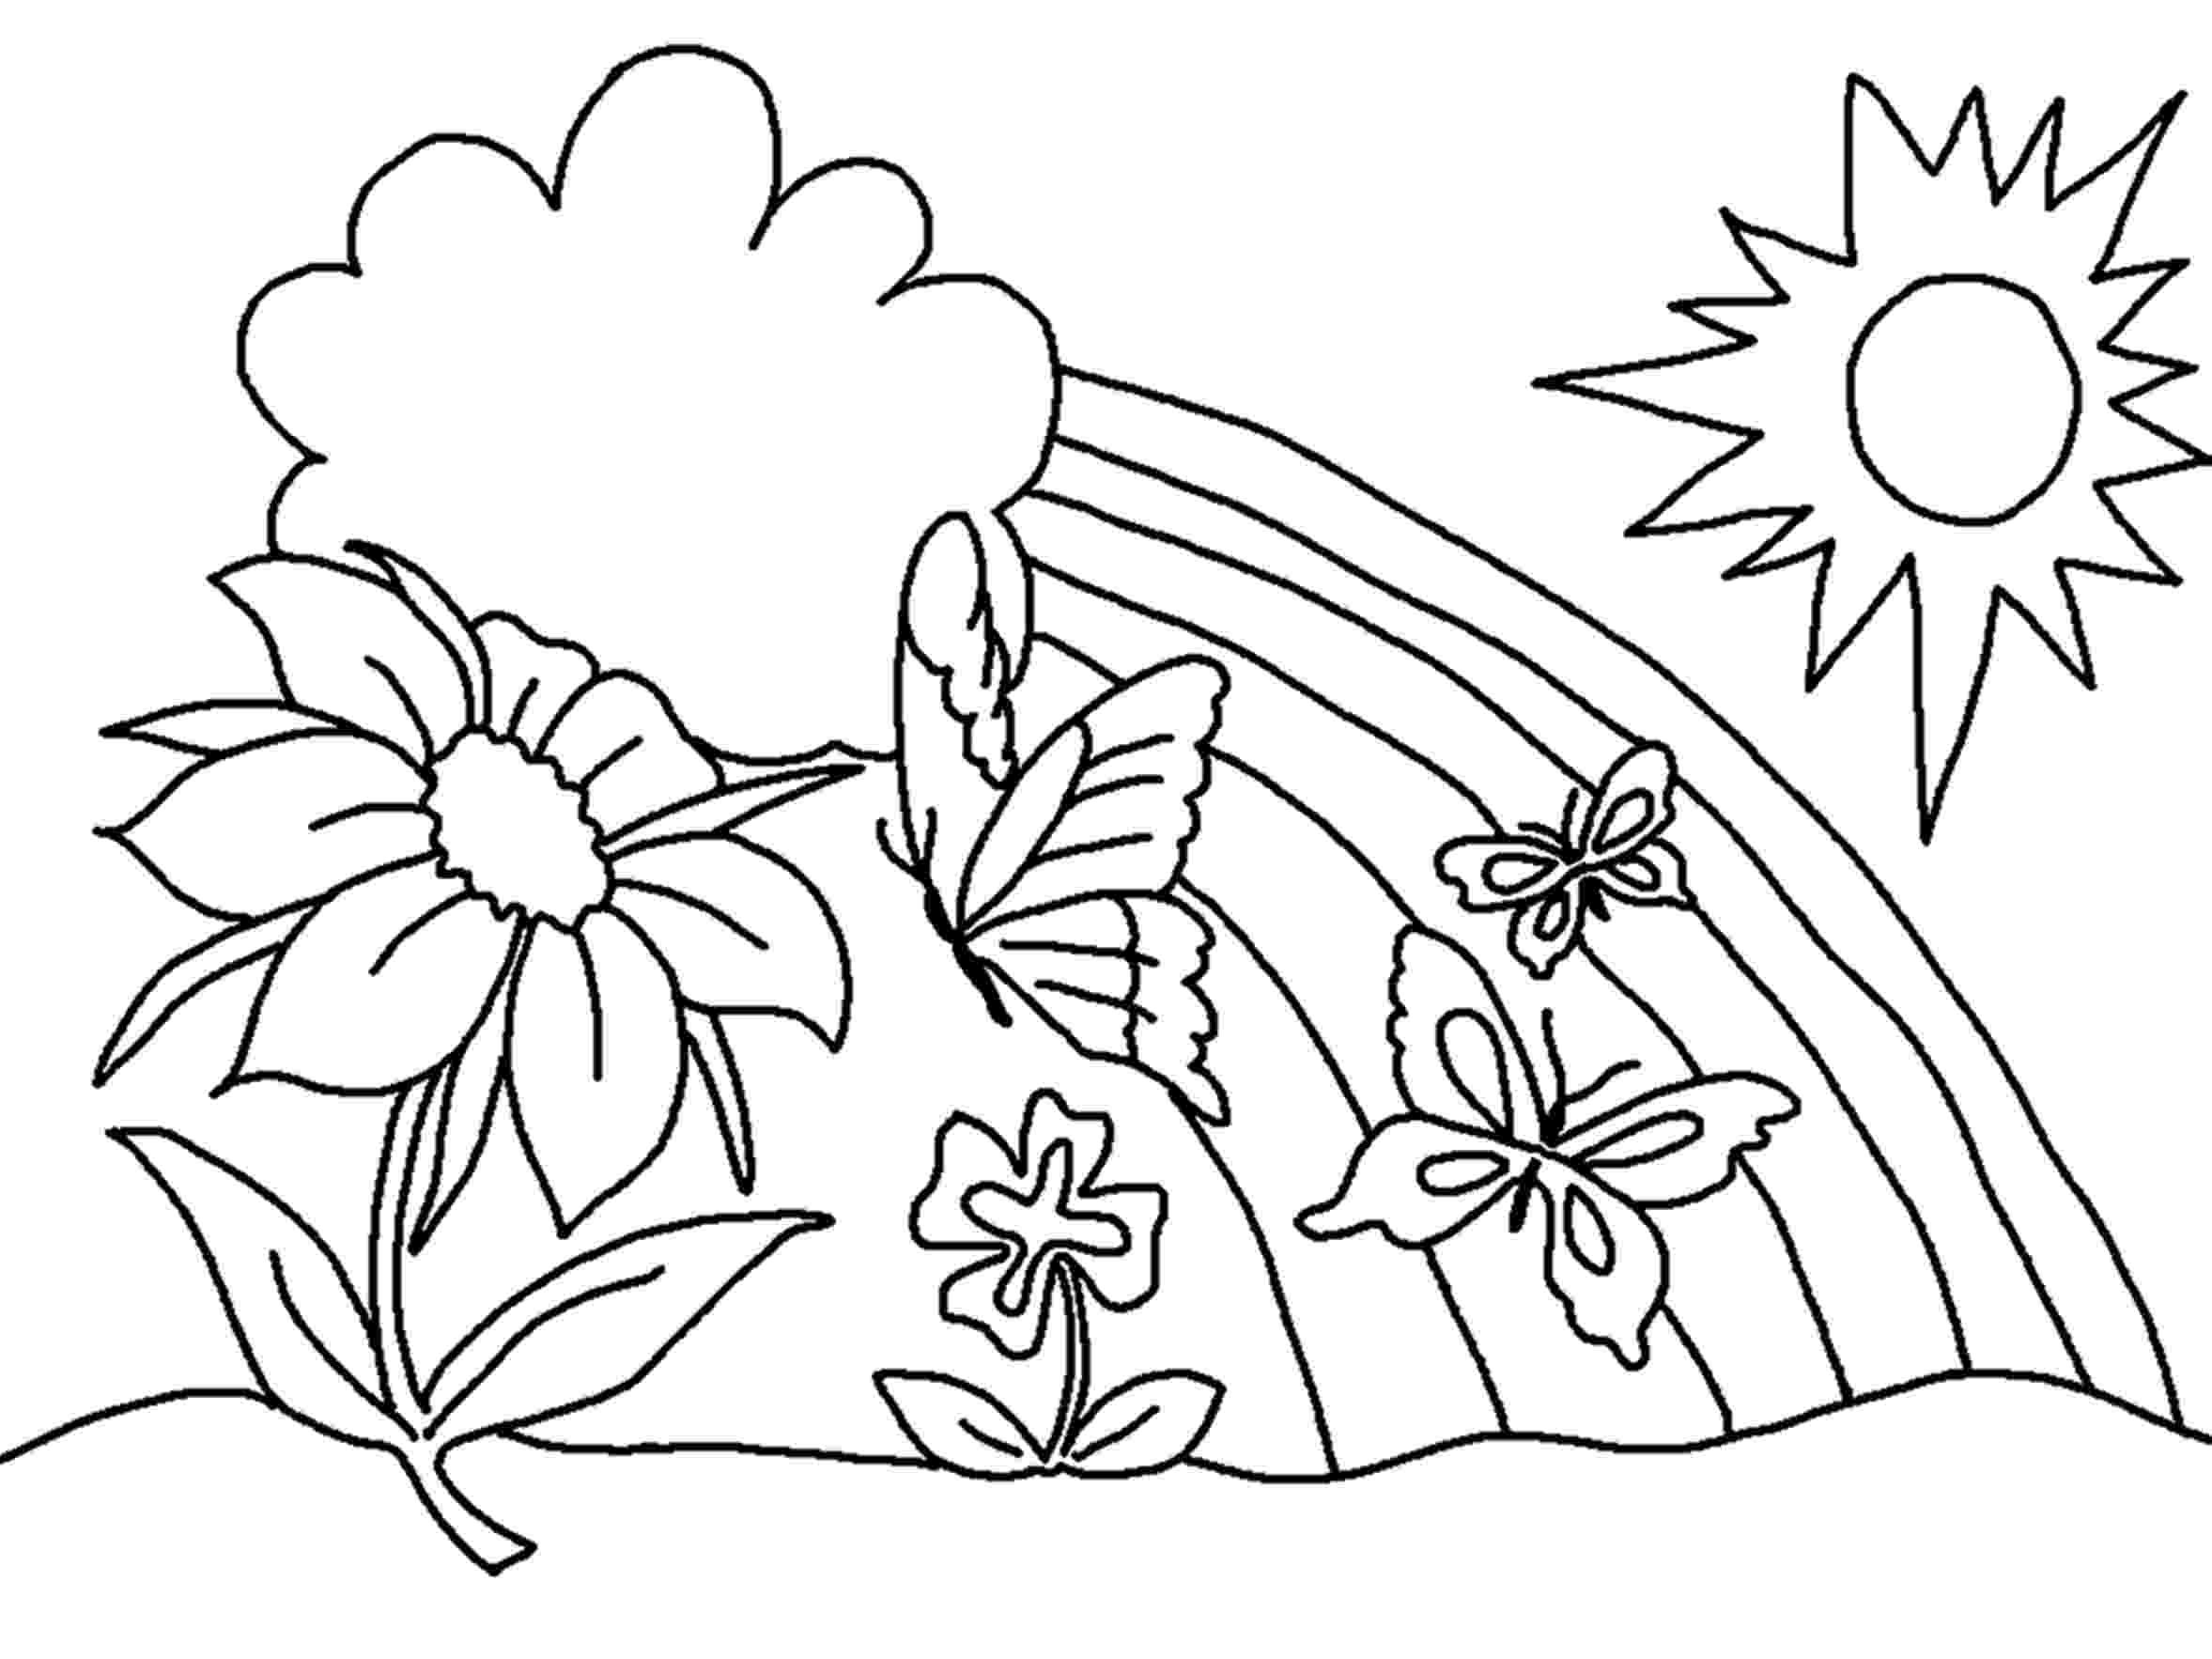 flower coloring sheets for kids free printable flower coloring pages for kids best coloring flower for sheets kids